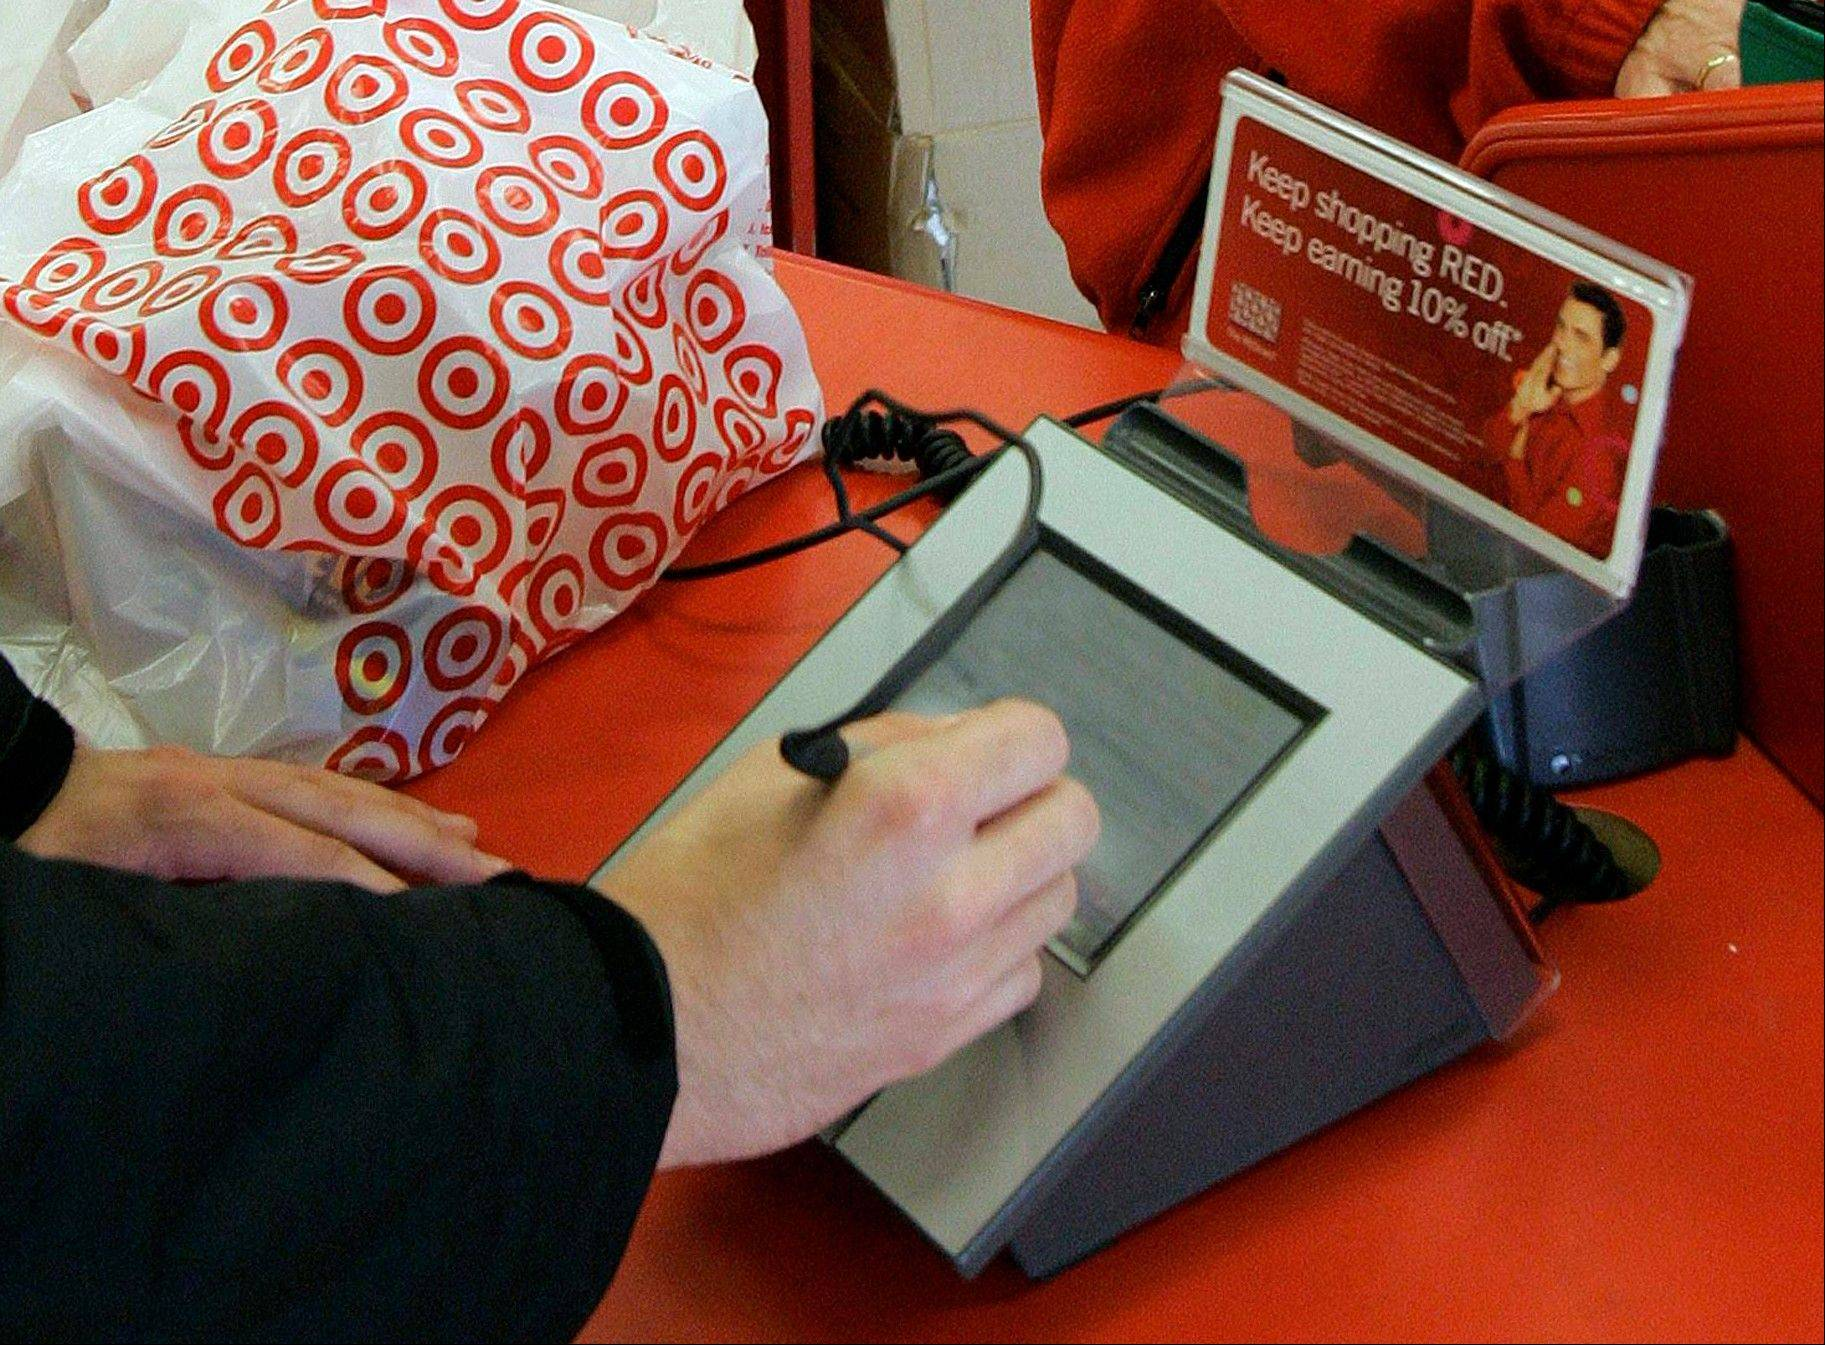 A customer signs his credit card receipt at a Target store in Tallahassee, Fla. Target and other U.S. retailers are ripe for credit card fraud because U.S. card companies use technology easily compromised.